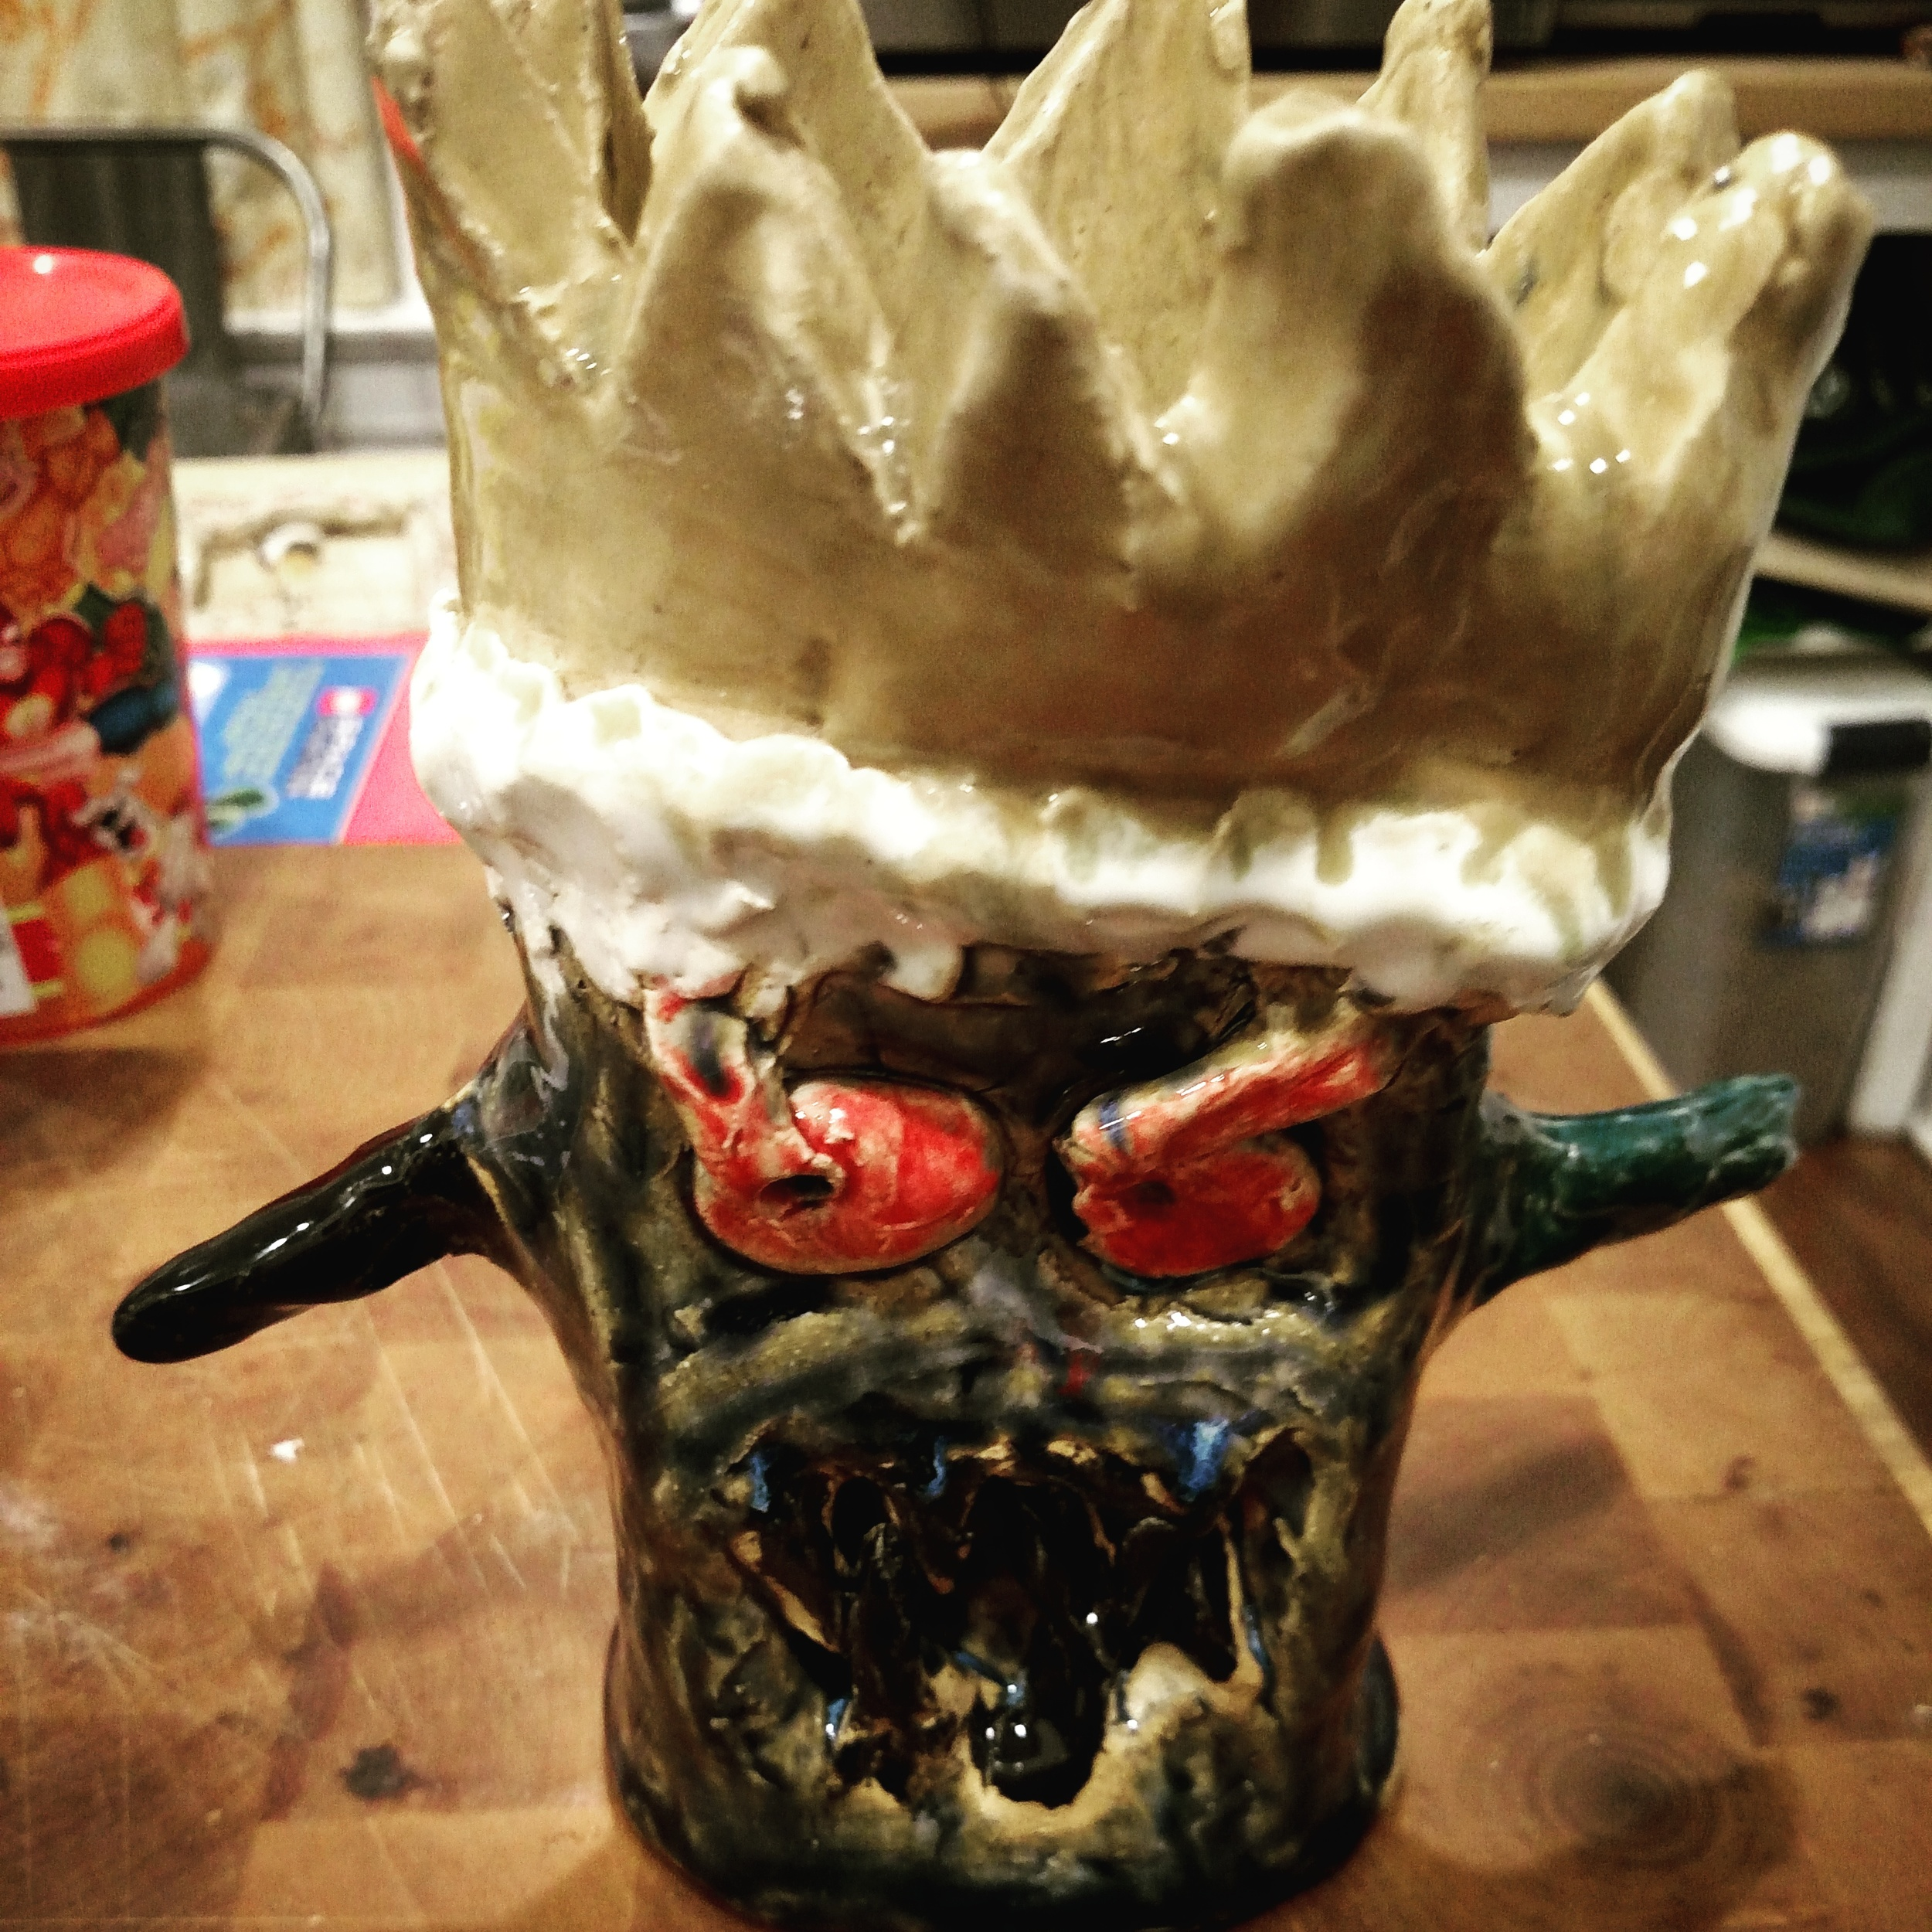 Biggest Little's King of the monsters, from his pottery camp this summer.